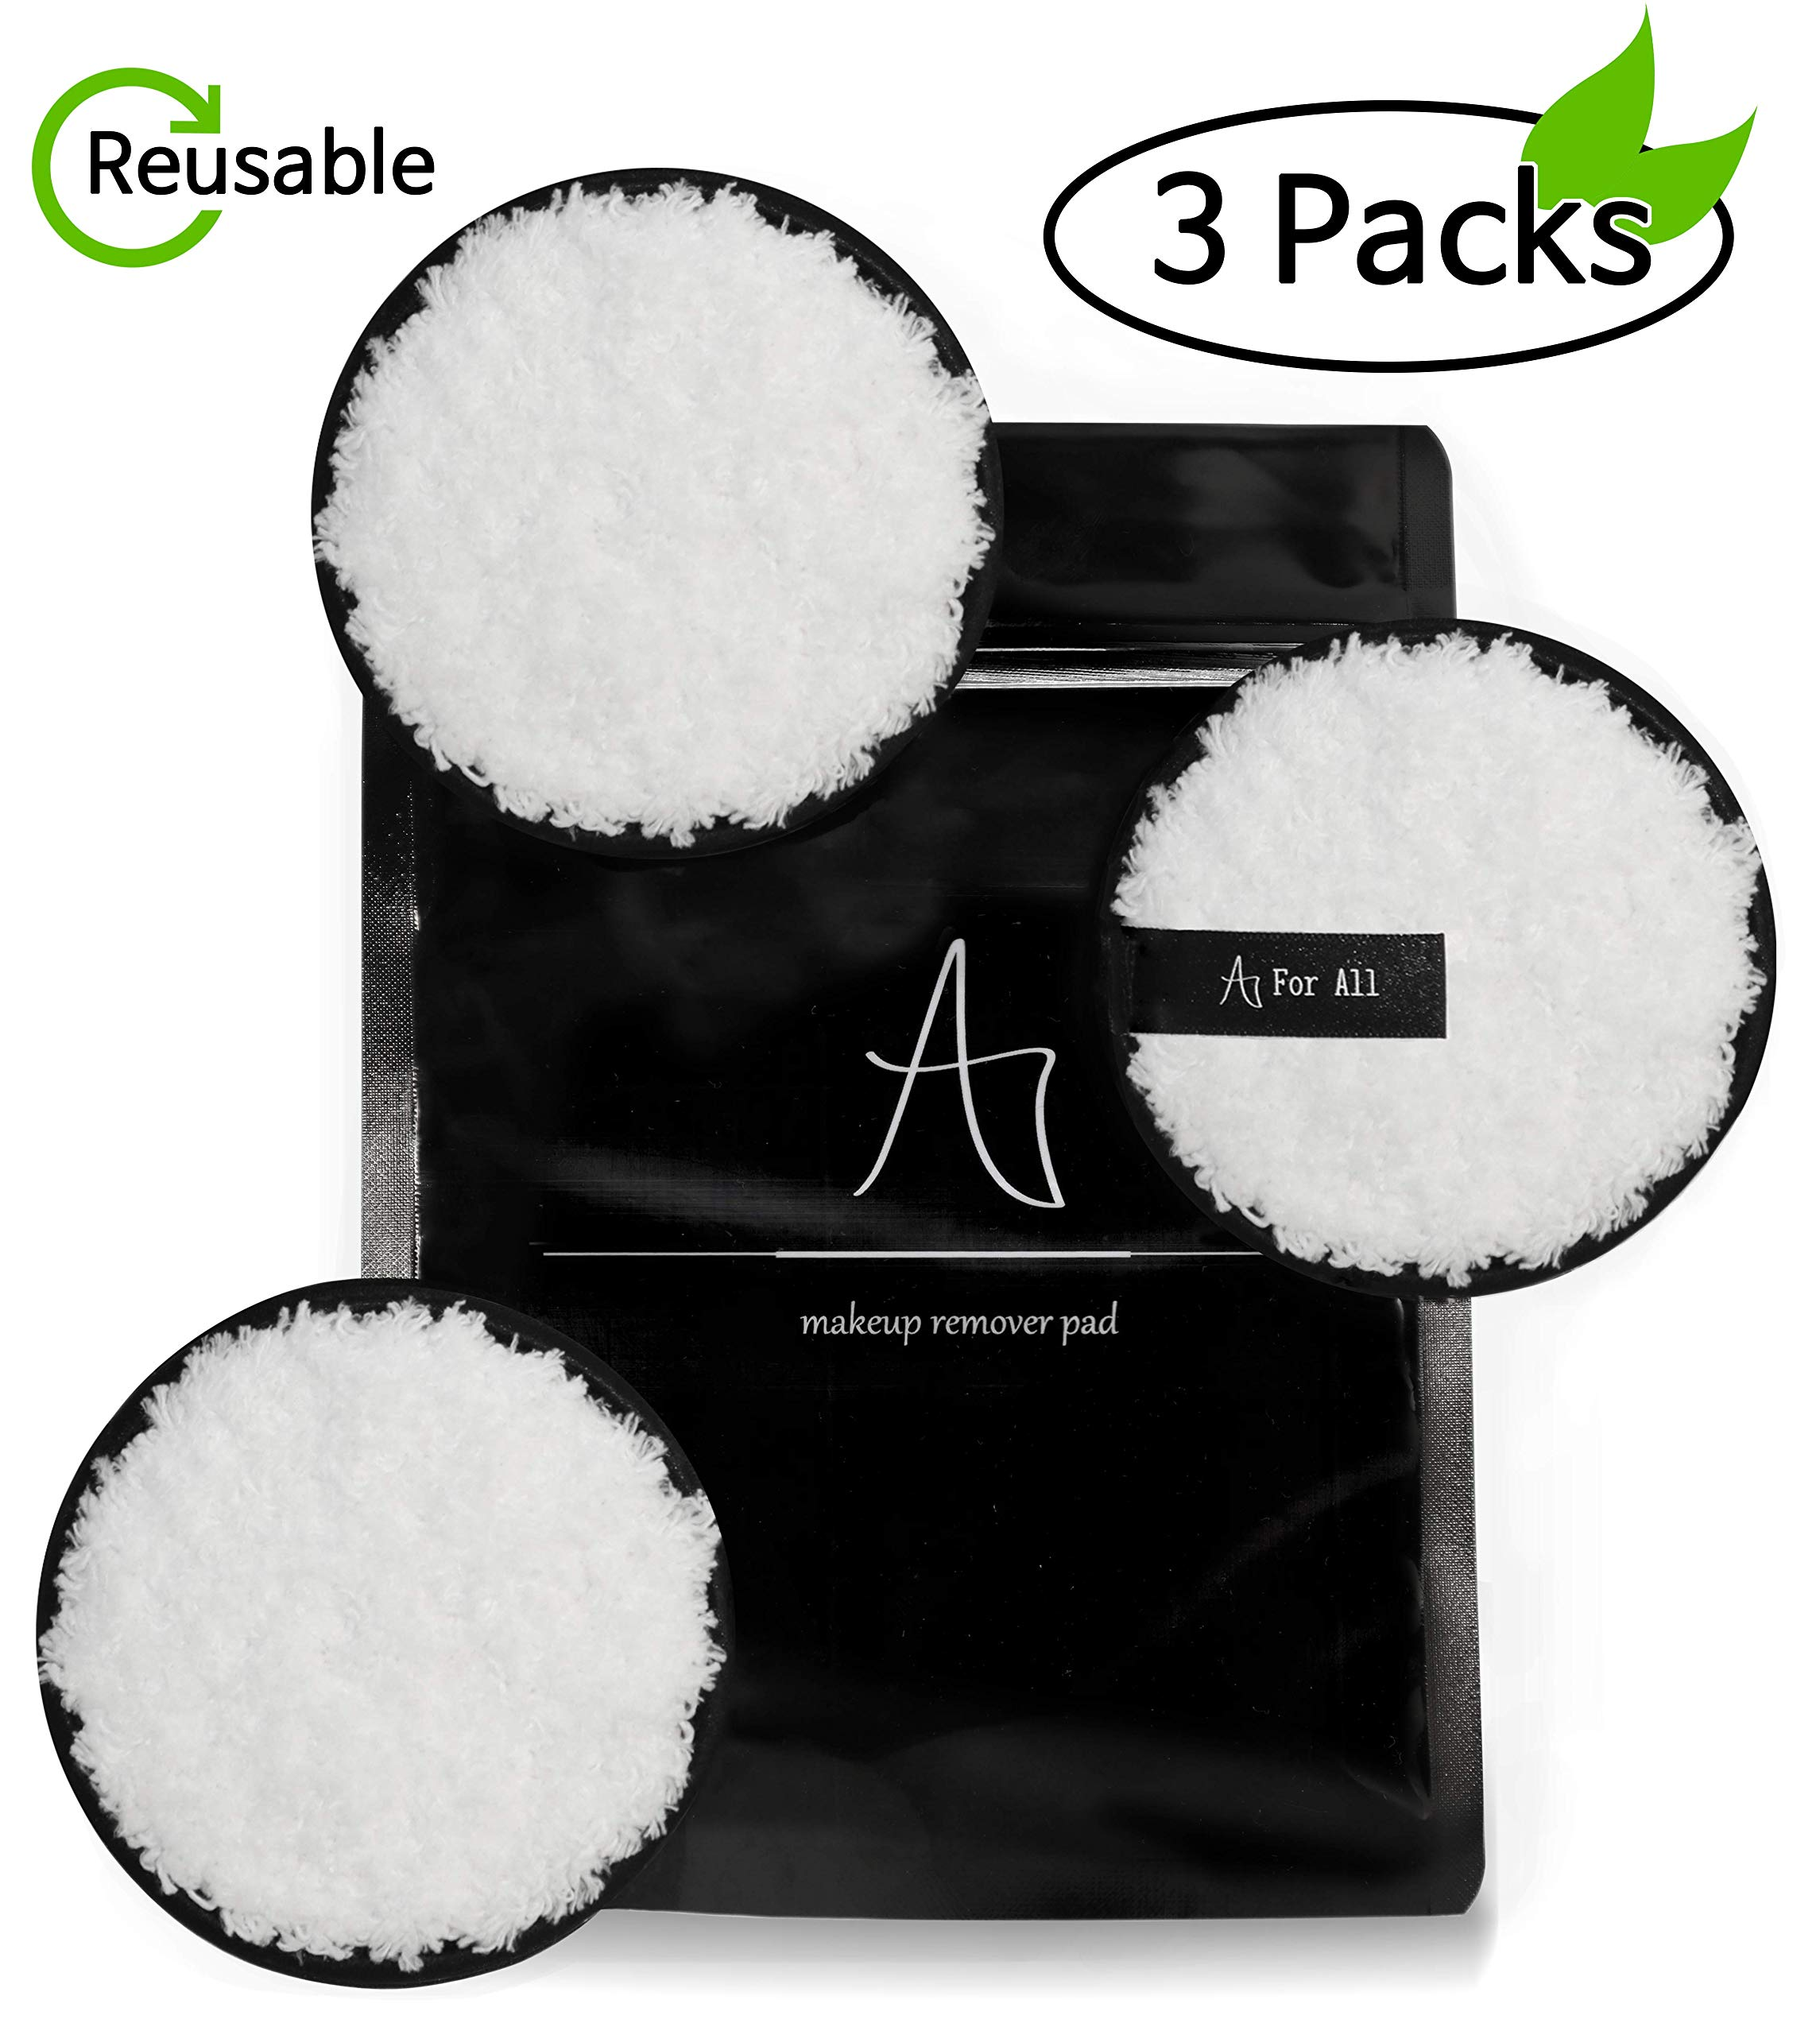 For All Makeup remover pads/Sustainable microfiber cleansing Pads / 3 pcs/Radios 3.7 inch/no chemical component/For All skin